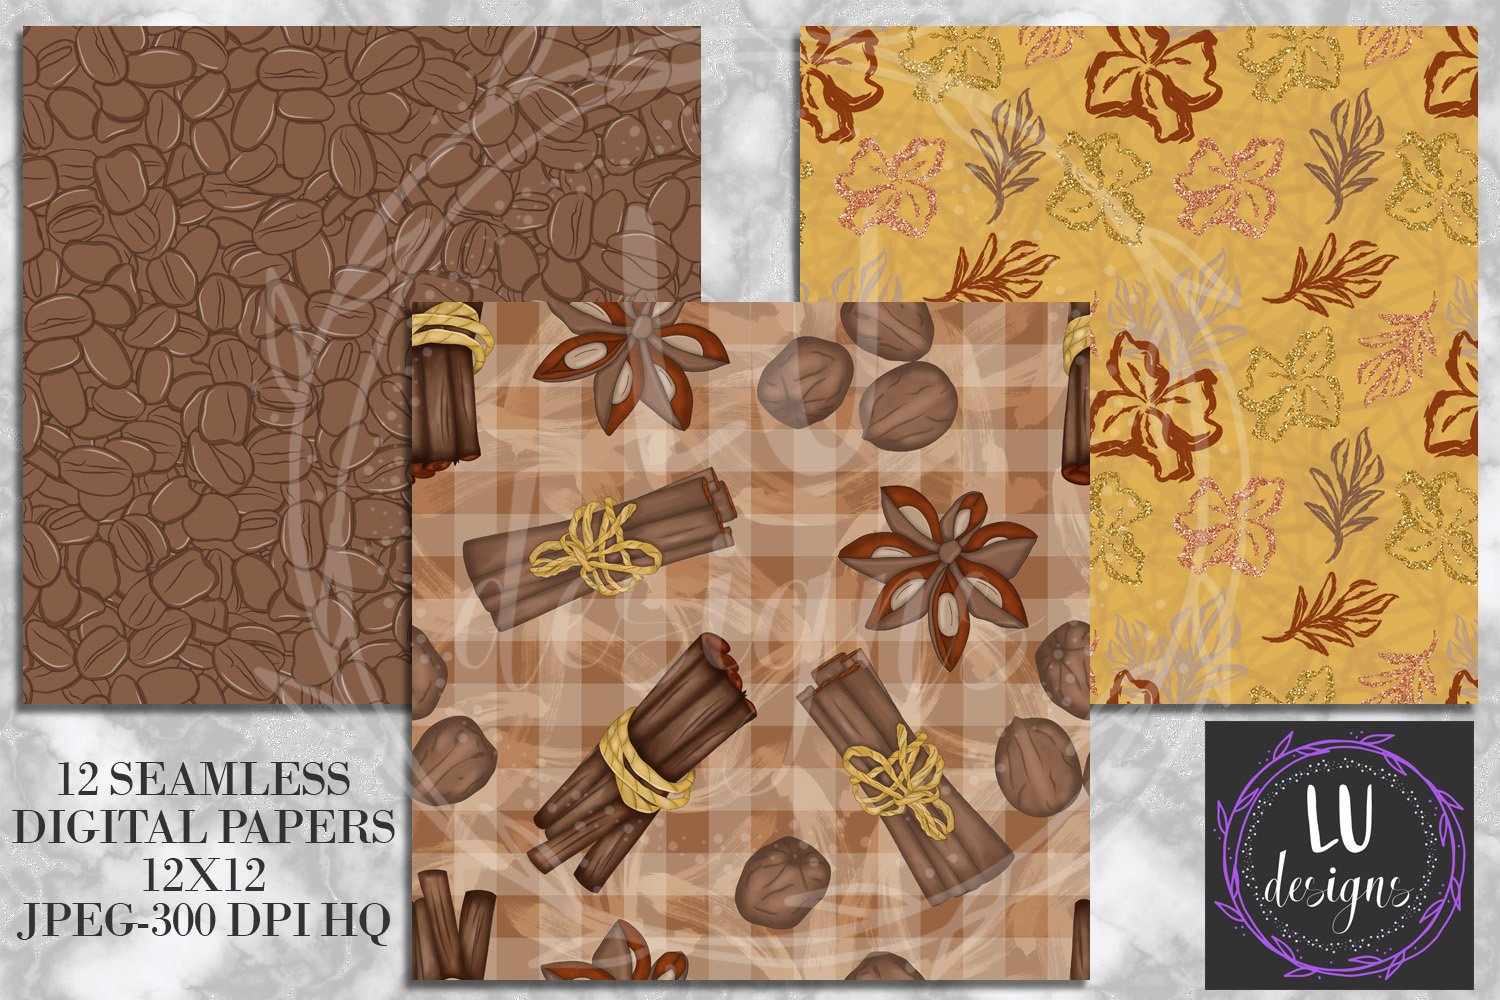 Cinnamon Spice Autumn Digital Paper, Fall Coffee Backgrounds example image 2